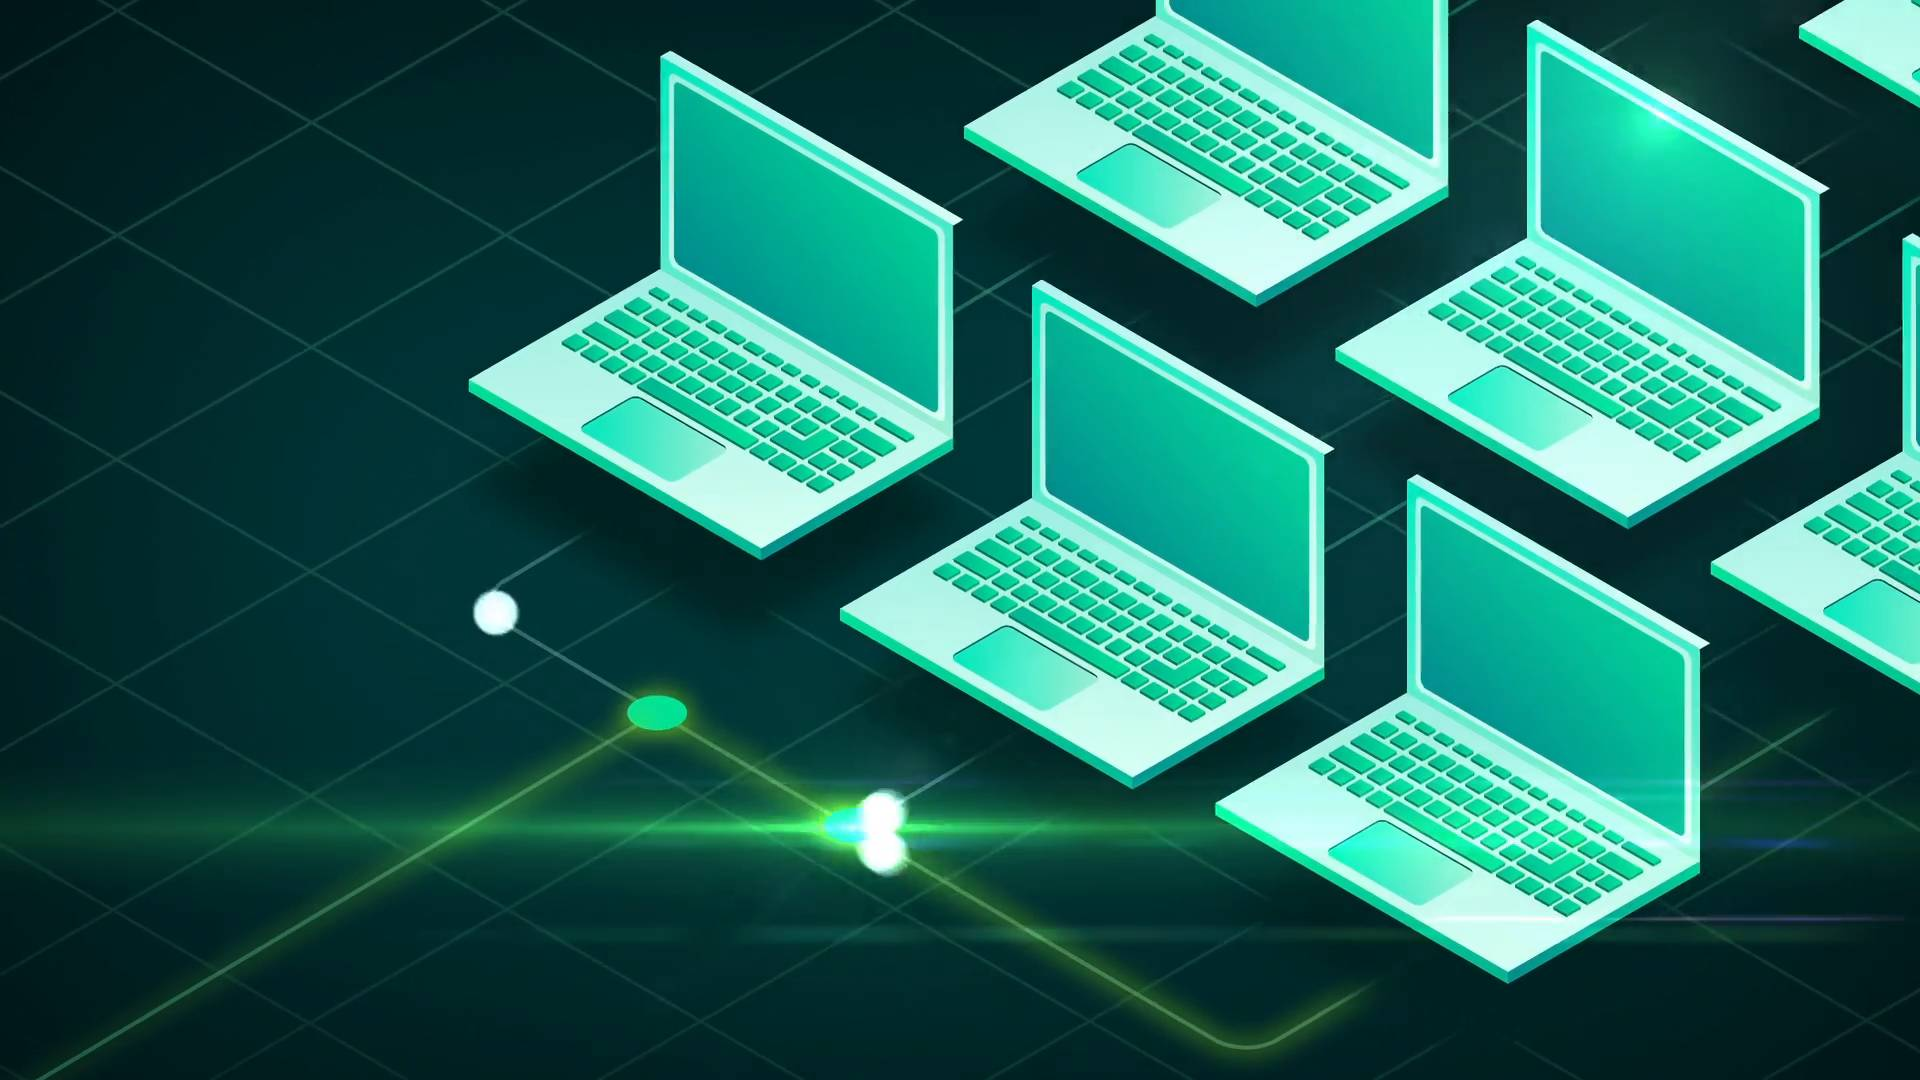 Veeam DataLabs helps you leverage your data for greater business acceleration